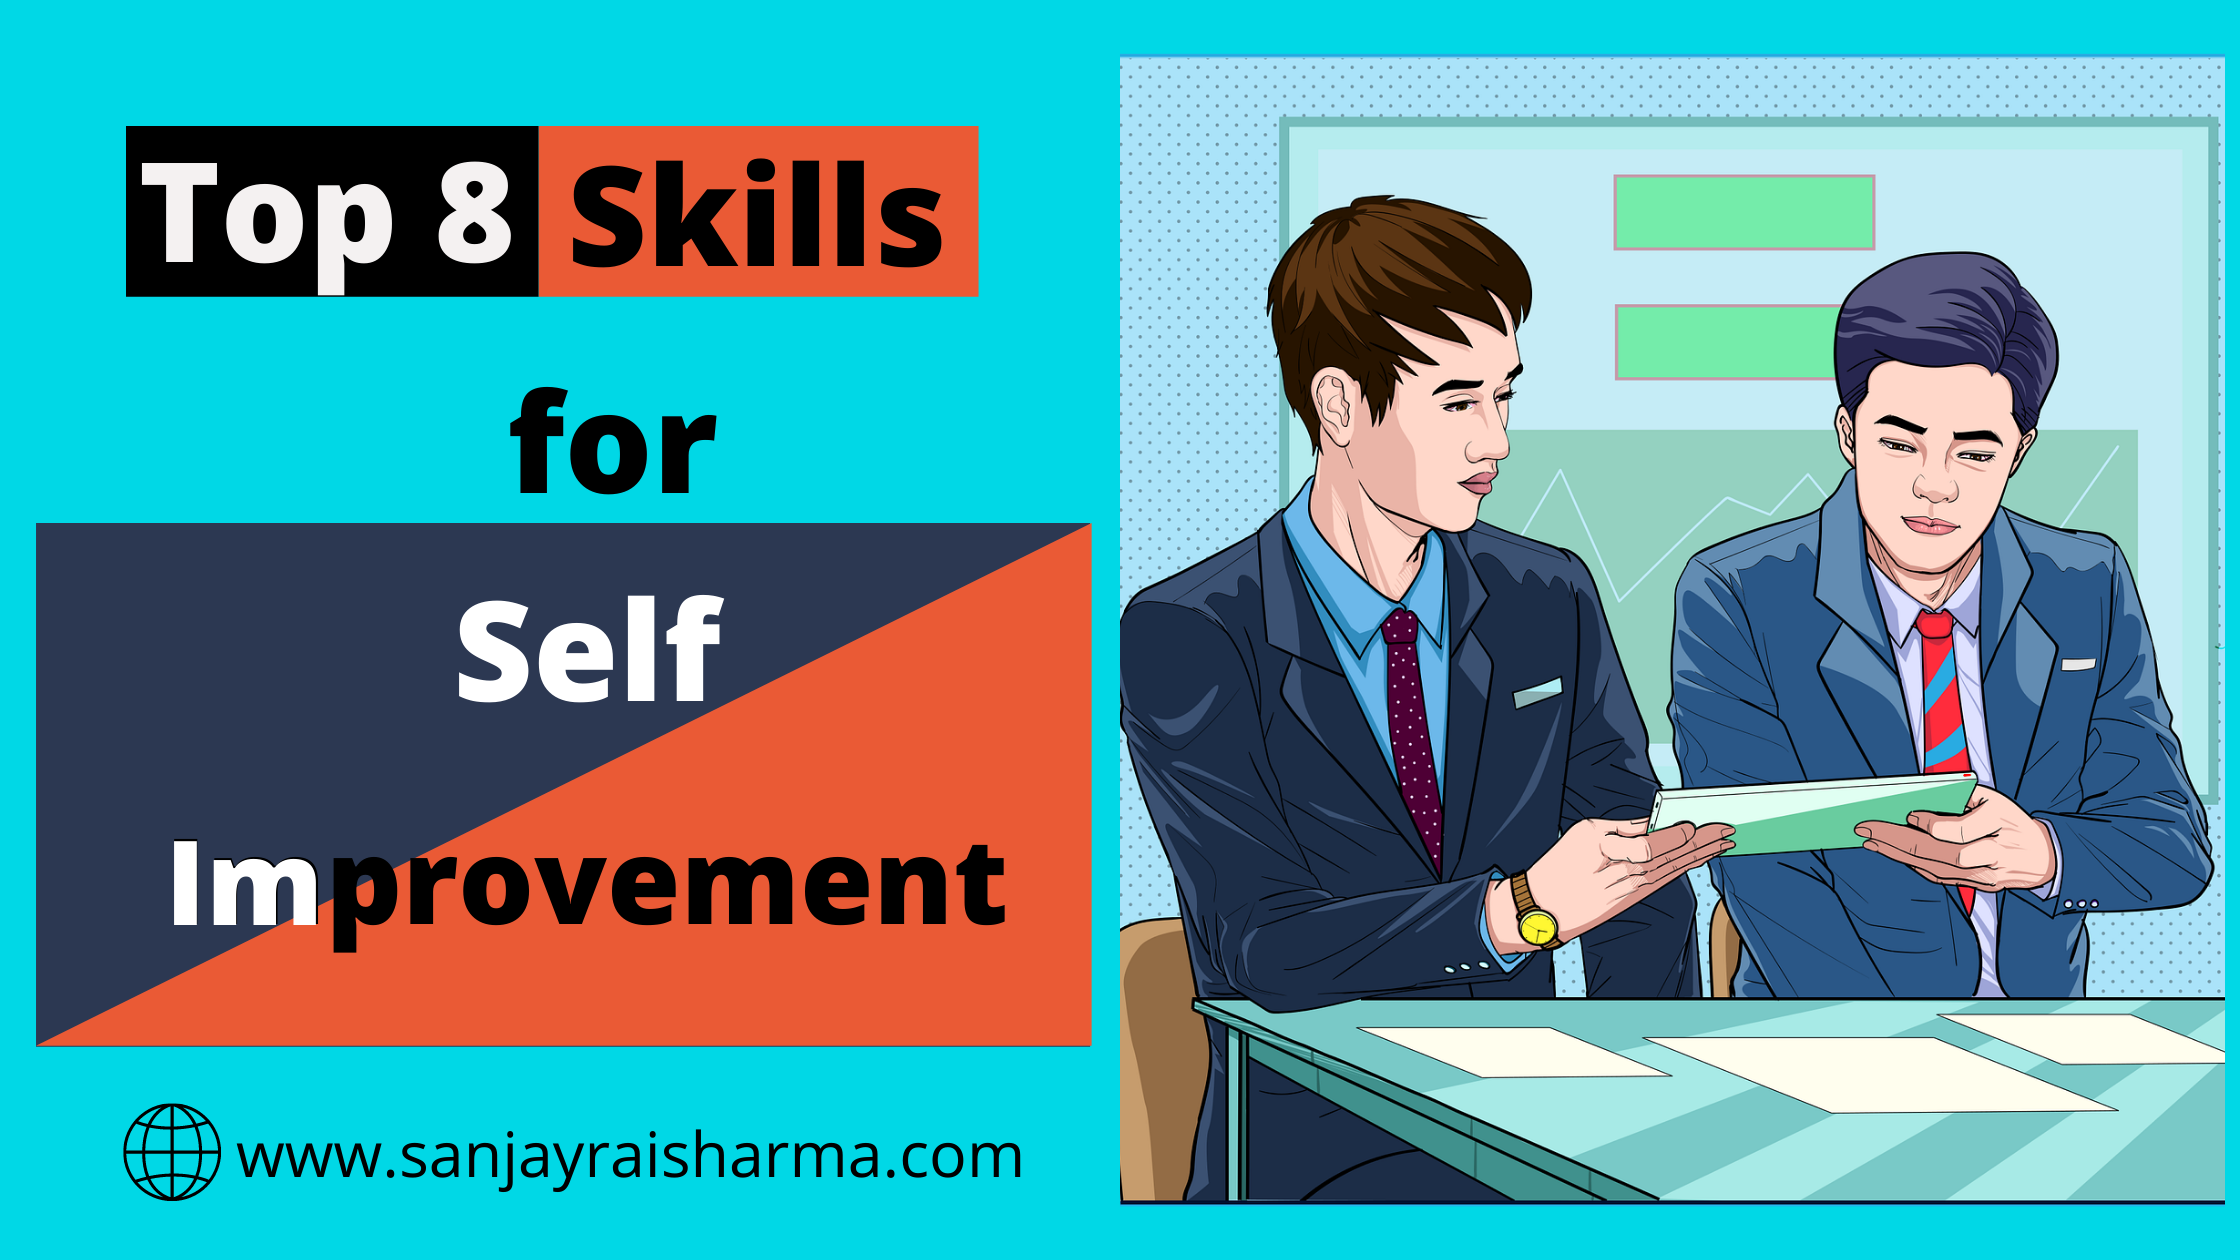 Top 8 skills that will benefit for self-improvement